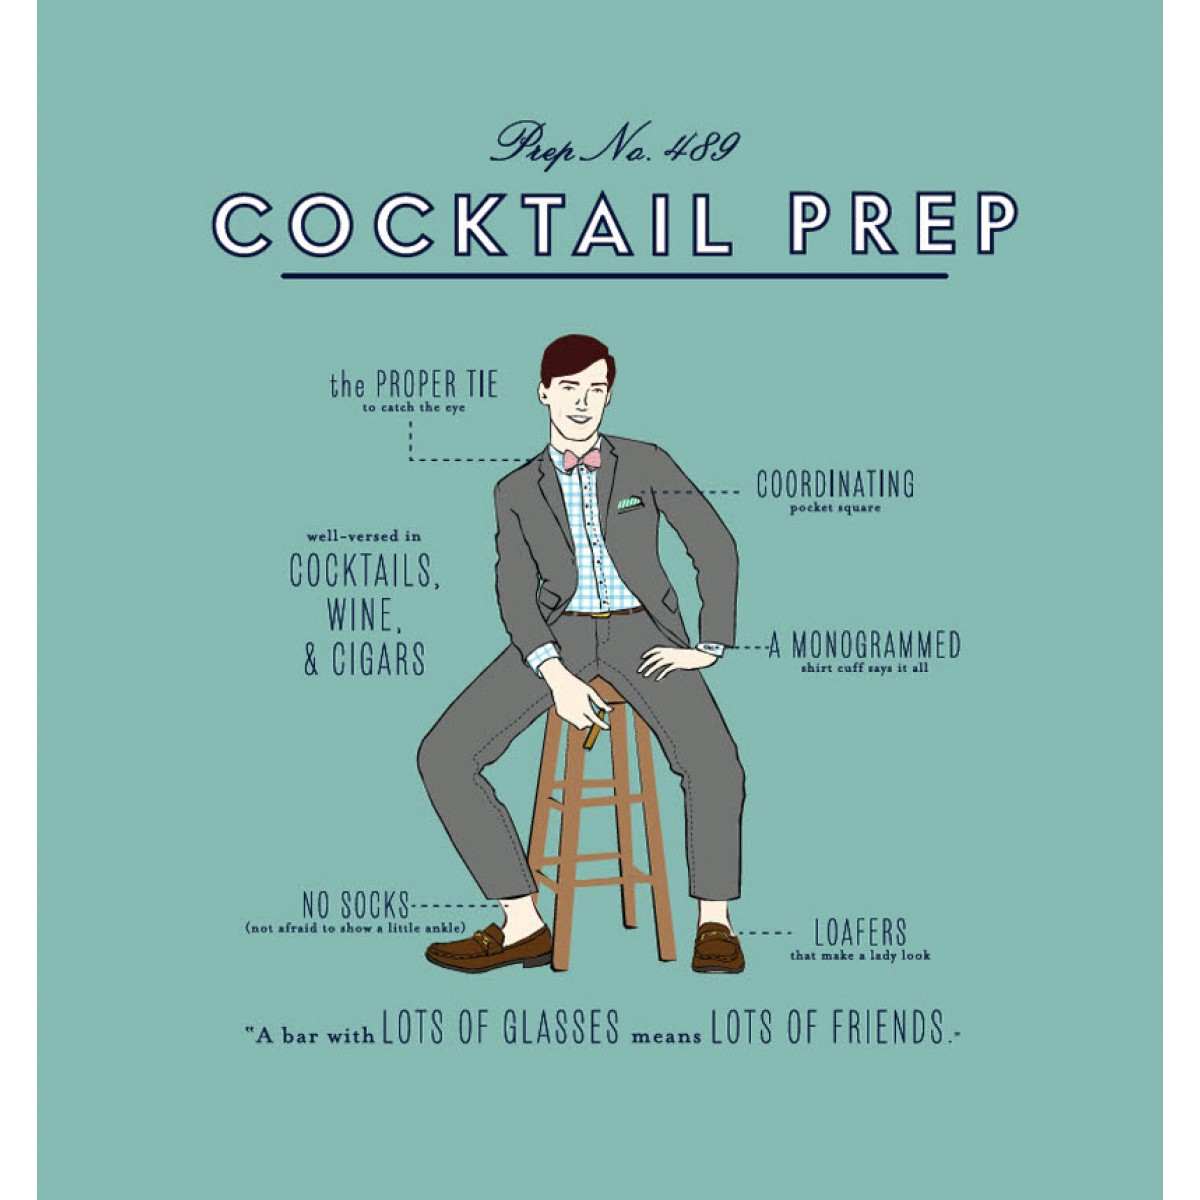 Limited Edition Cocktail Prep Tee